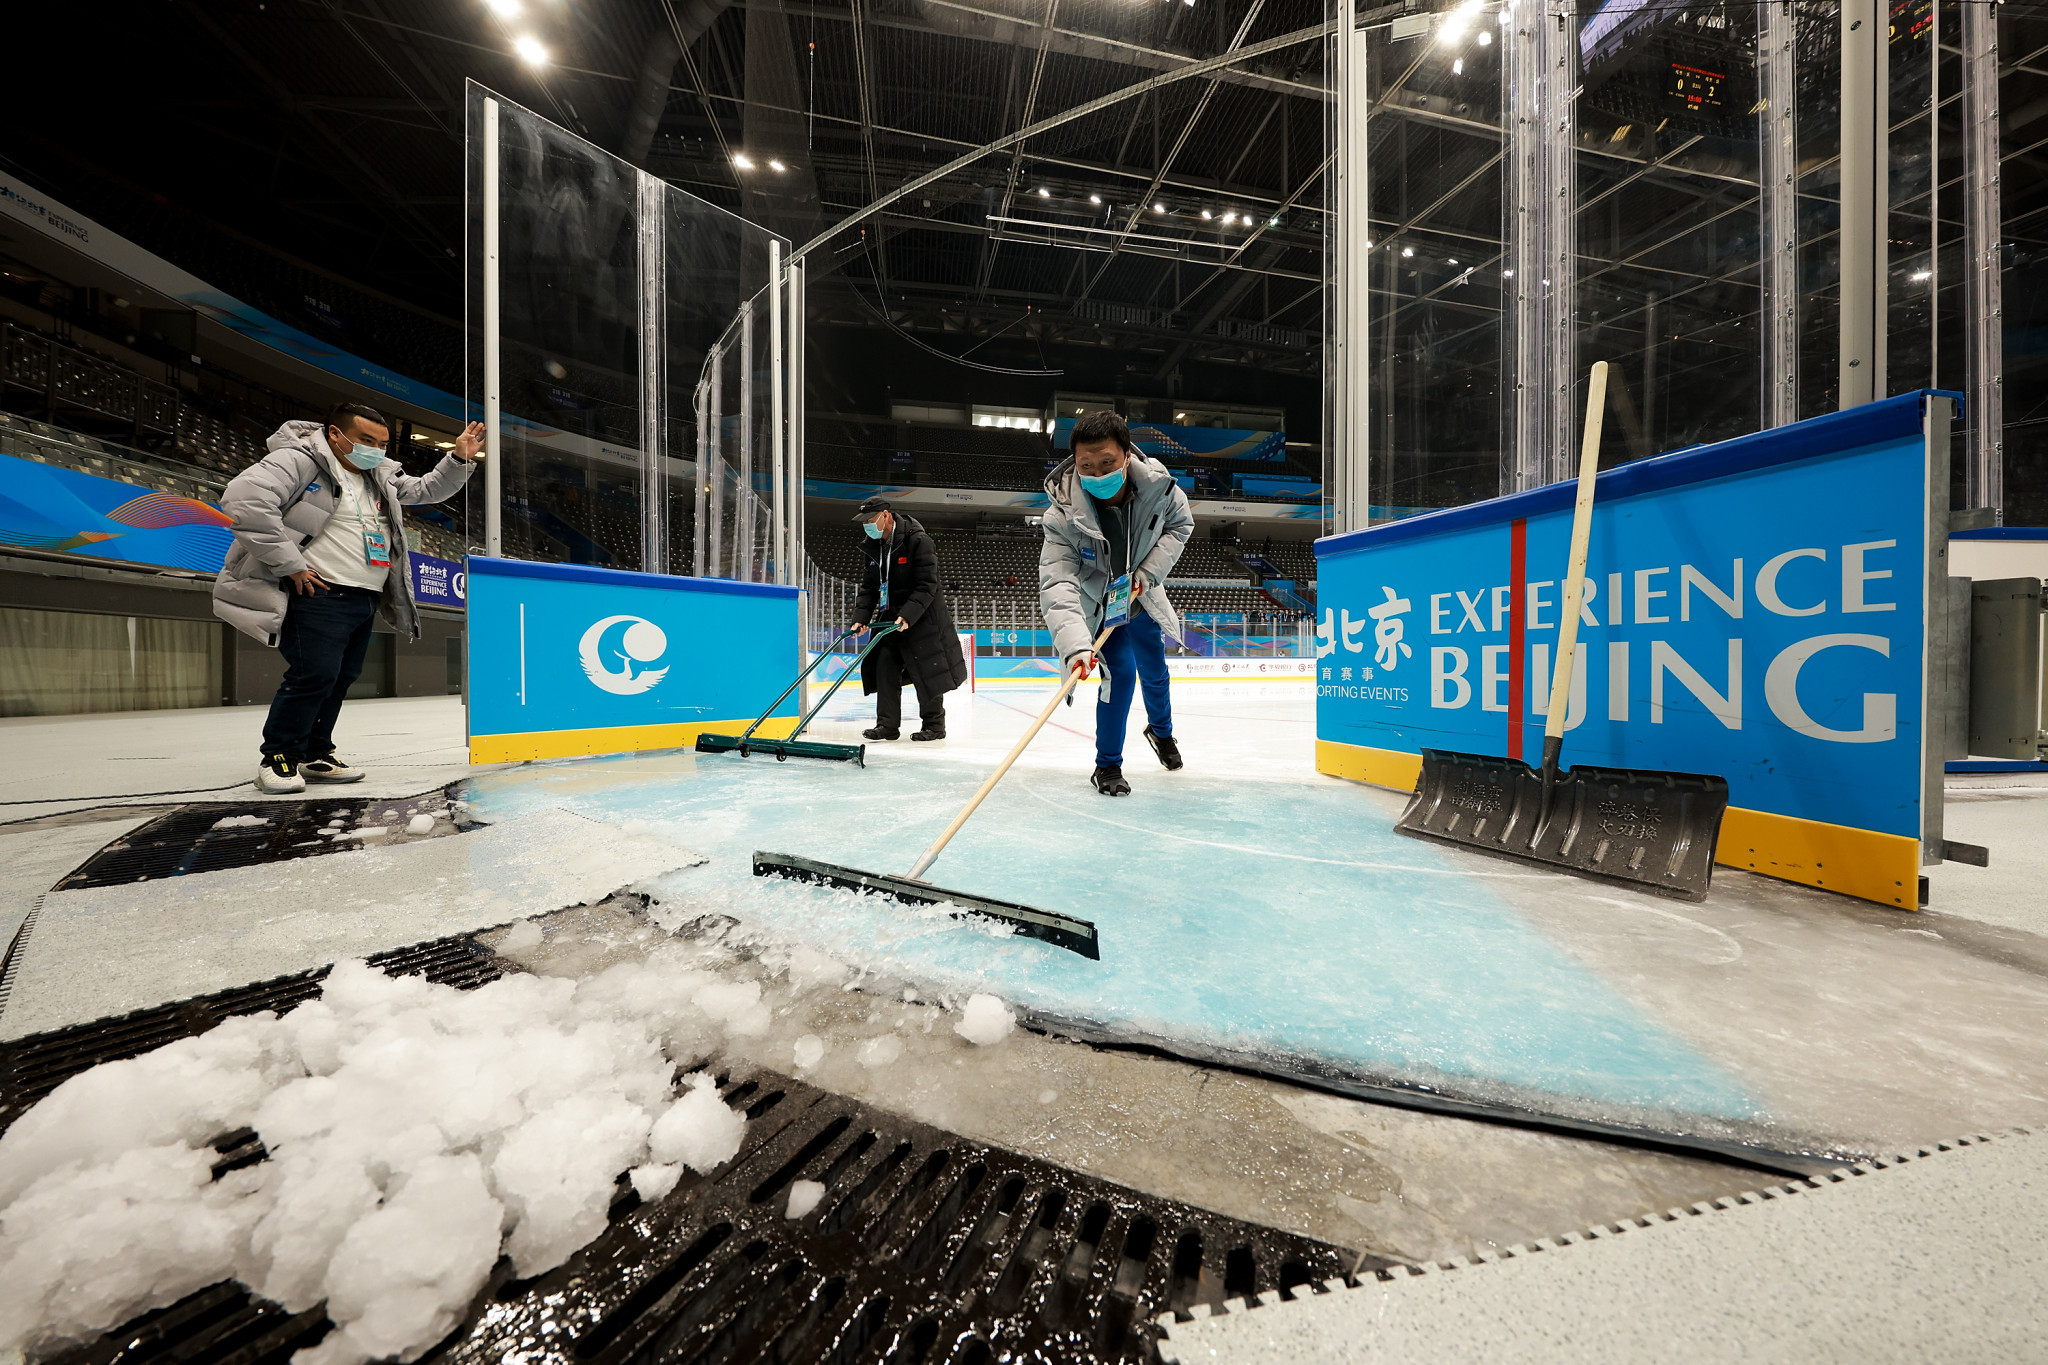 Beijing is set to host the Para Ice Hockey at the Beijing 2022 Paralympic Games next year ©Getty Images